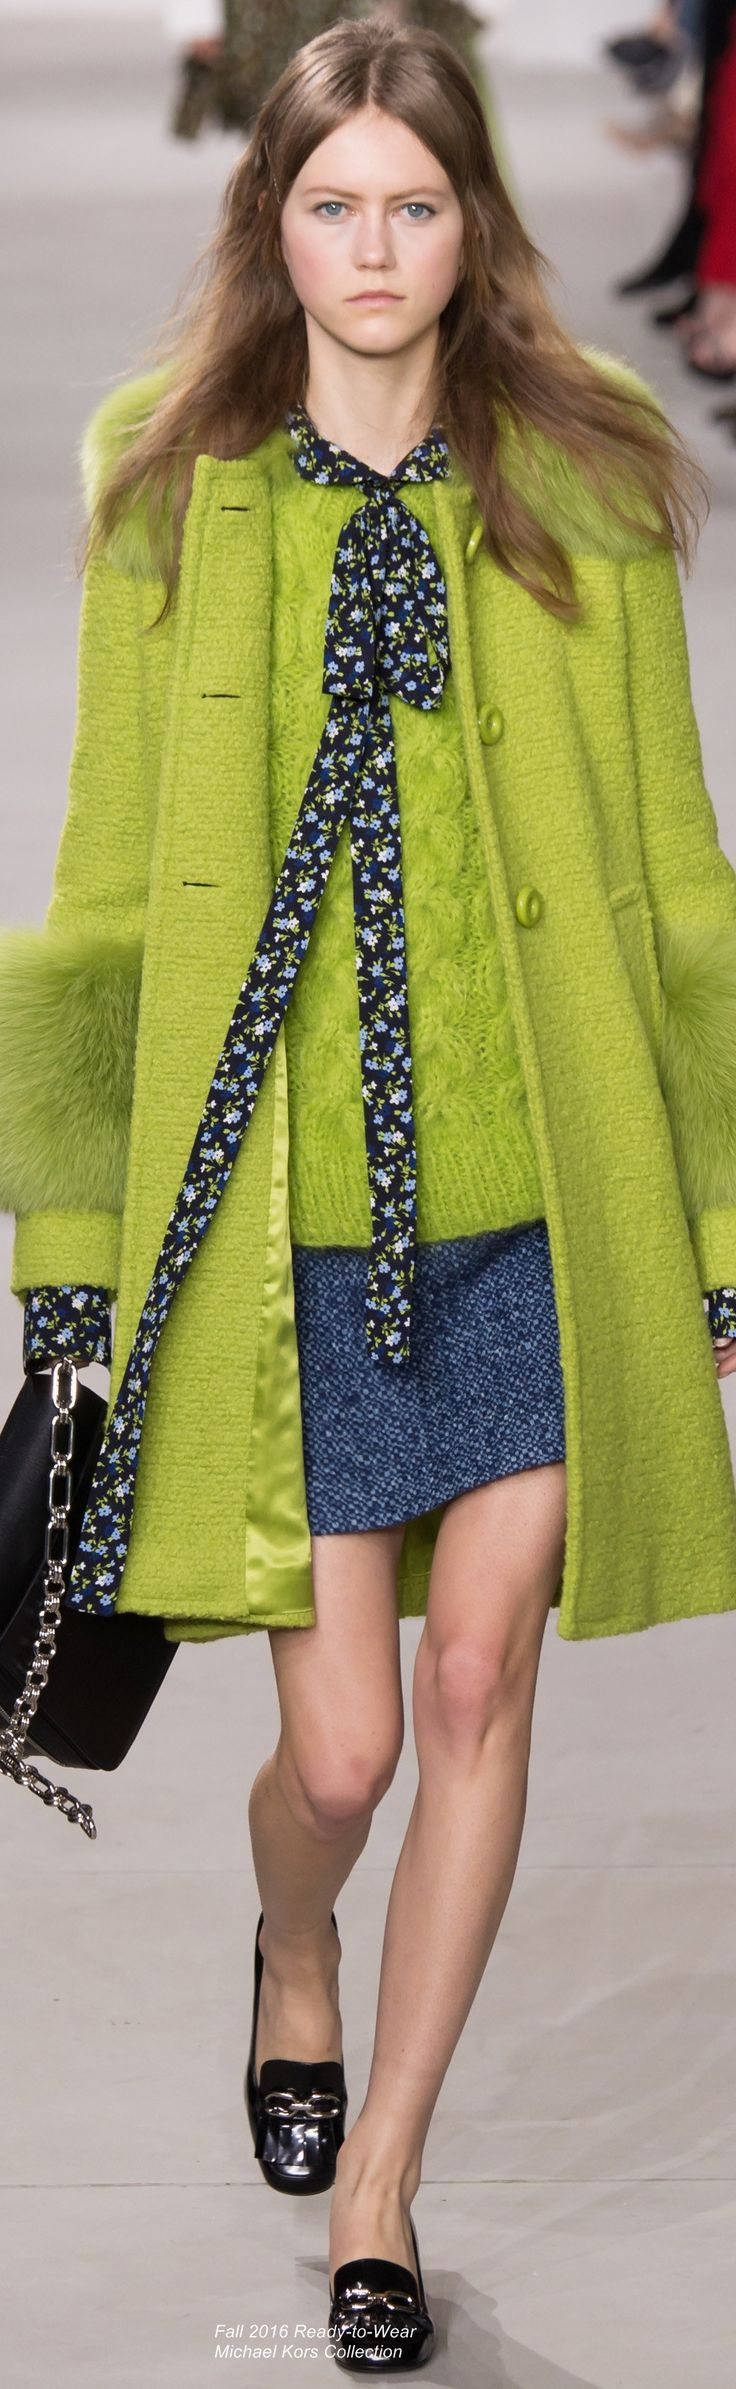 Fall 2016 Ready-to-Wear Michael Kors Collection